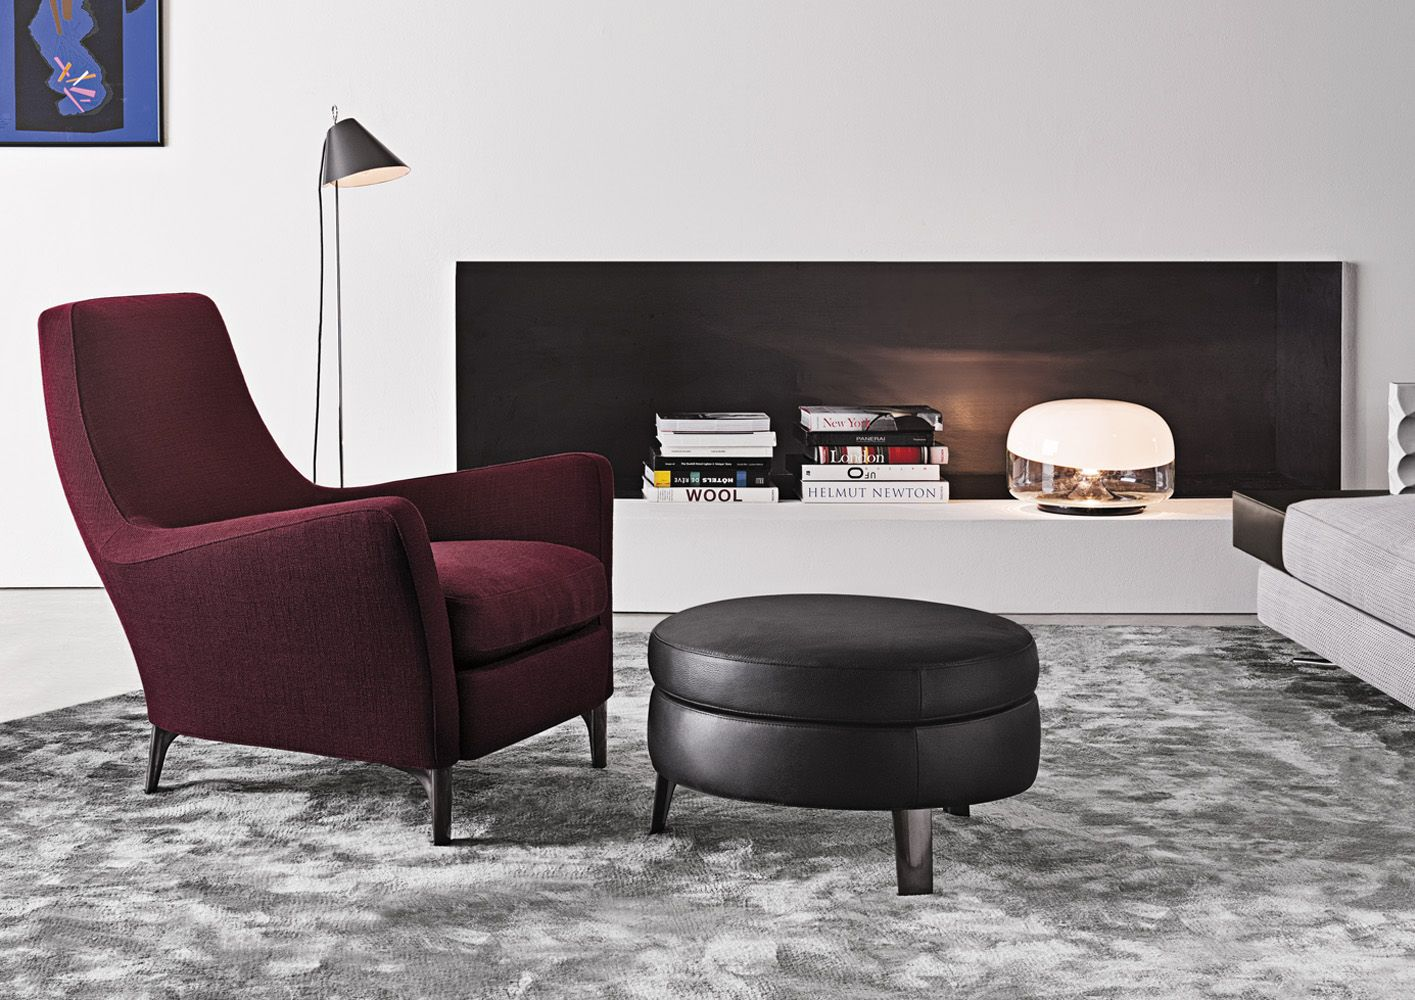 Minotti Denny Chair Also Fits The Bill For Modern And Comfortable Looking